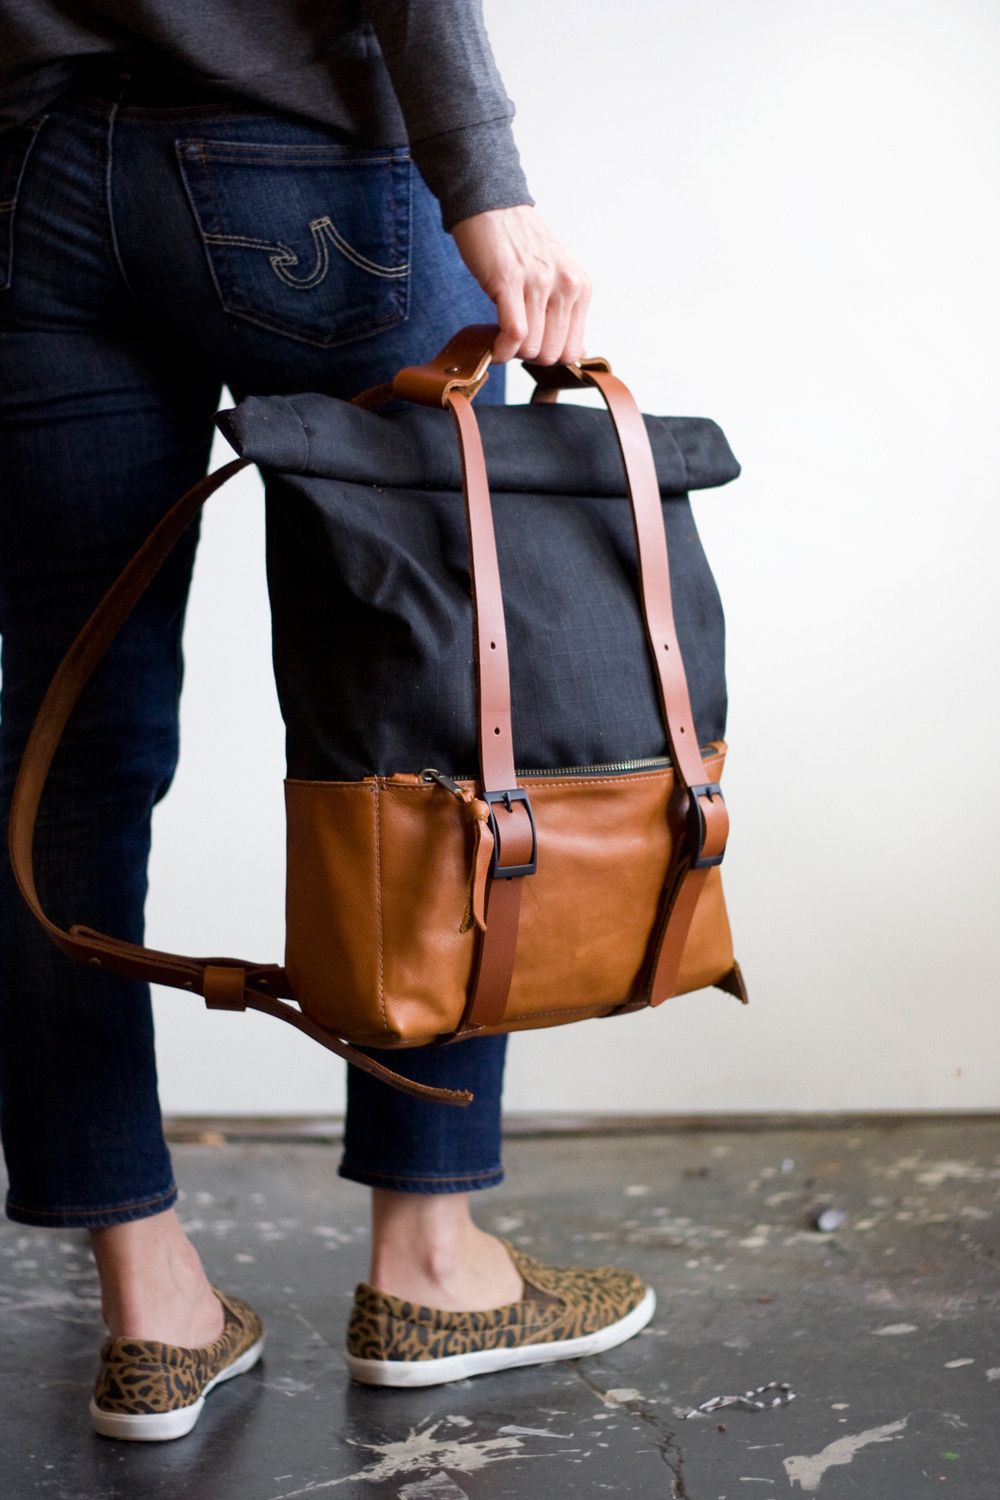 Ace Backpack in Caramel Leather and Black Waxed Canvas & Ace Backpack in Caramel Leather and Black Waxed Canvas | Bags ...